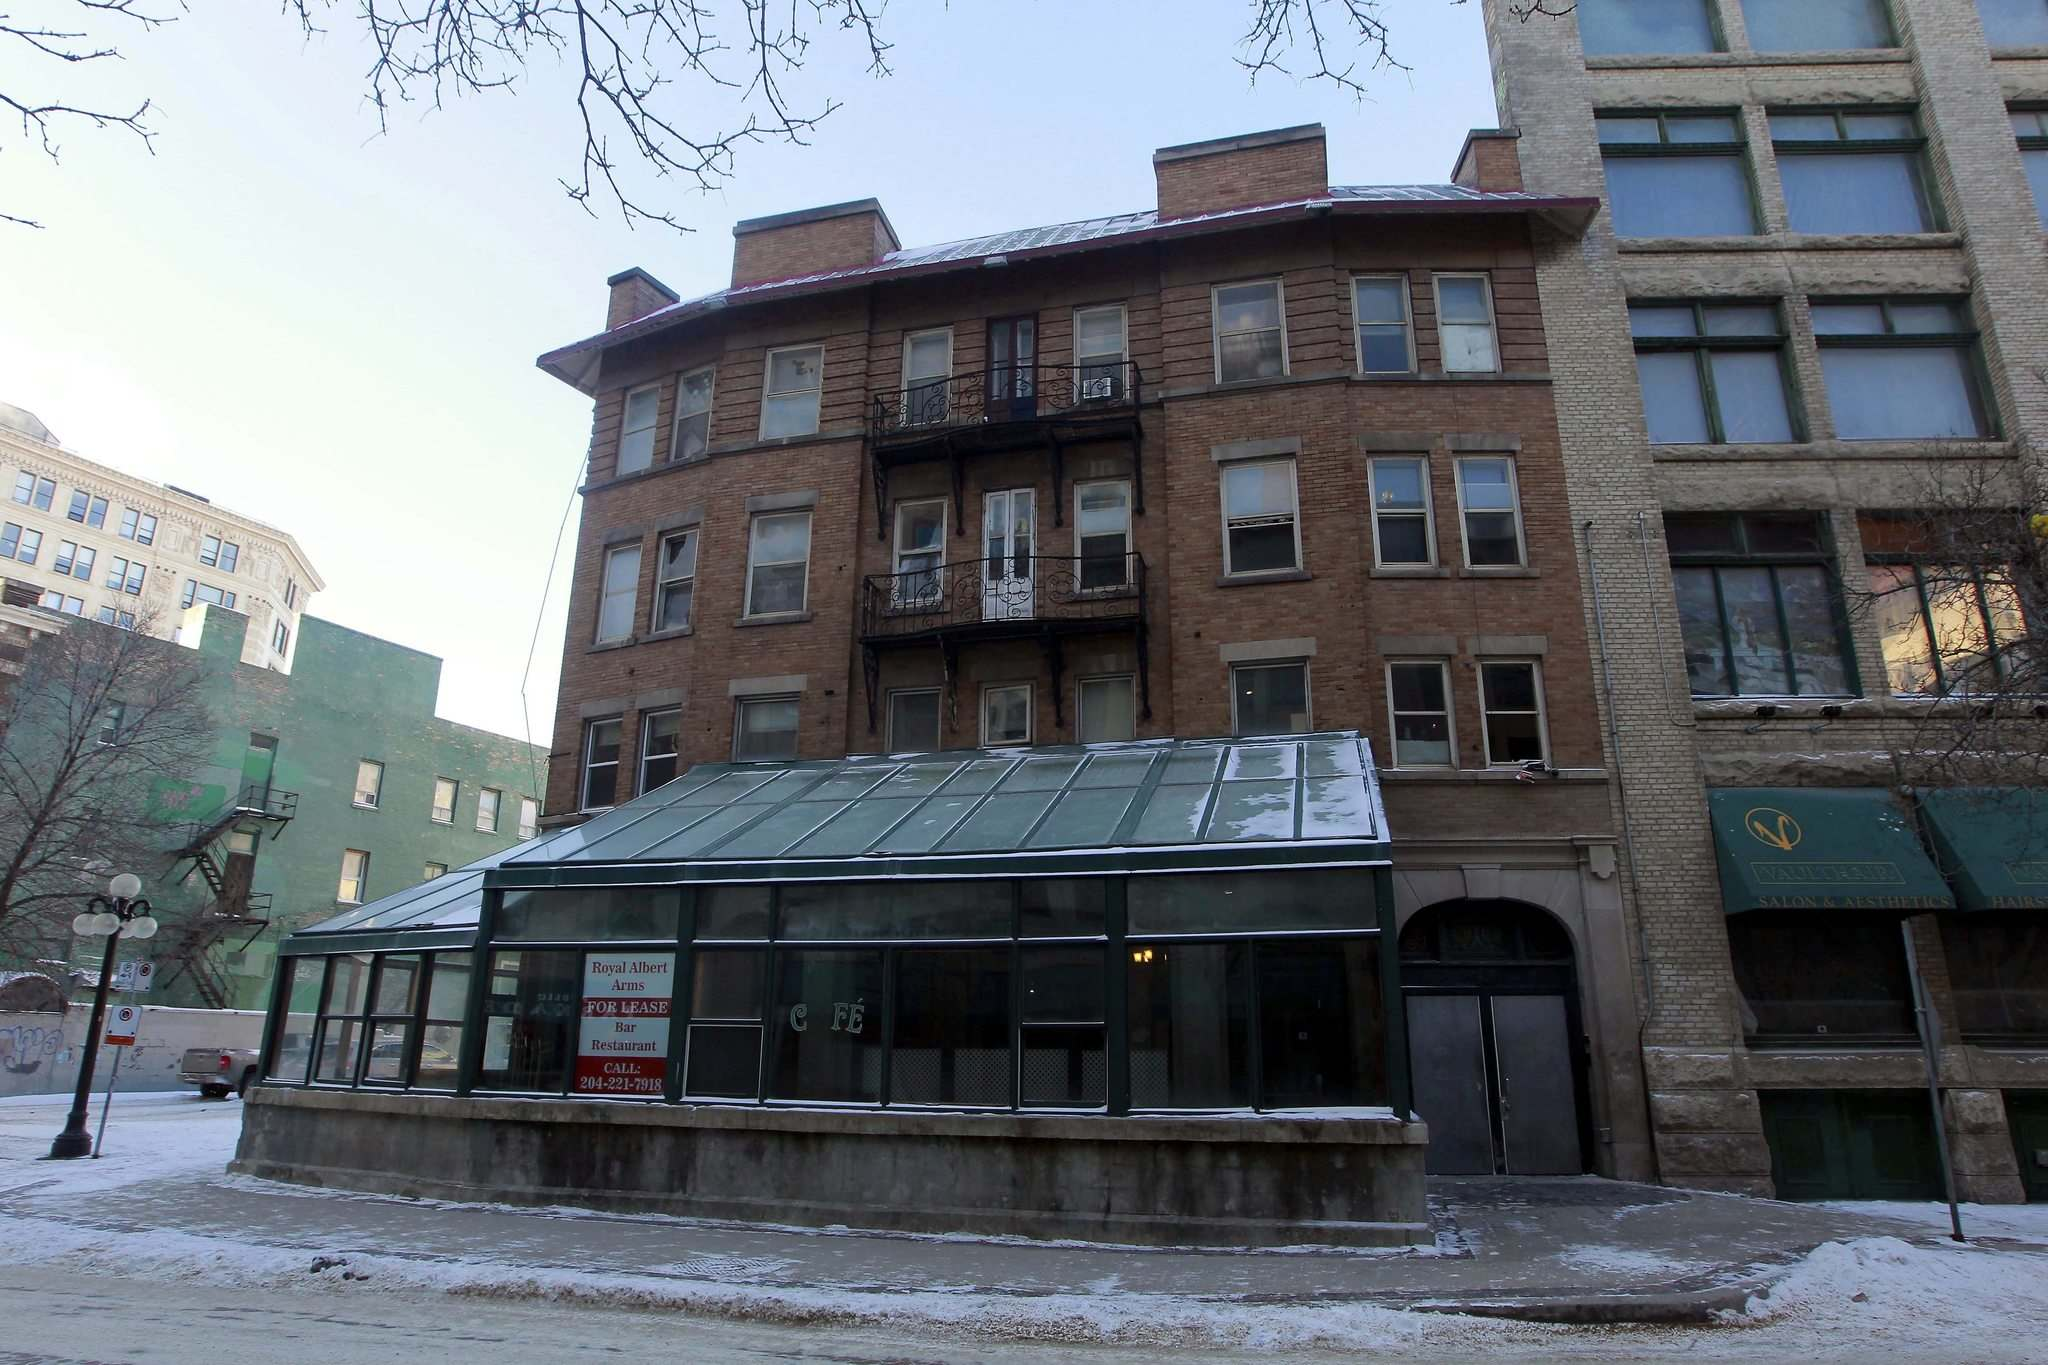 BORIS MINKEVICH / WINNIPEG FREE PRESS</p><p>The Royal Albert Arms Hotel is a heritage property that was once one of Winnipeg&#39;s most notable music venues, but fell on hard times over the past decade because of turbulent previous ownership.</p></p>